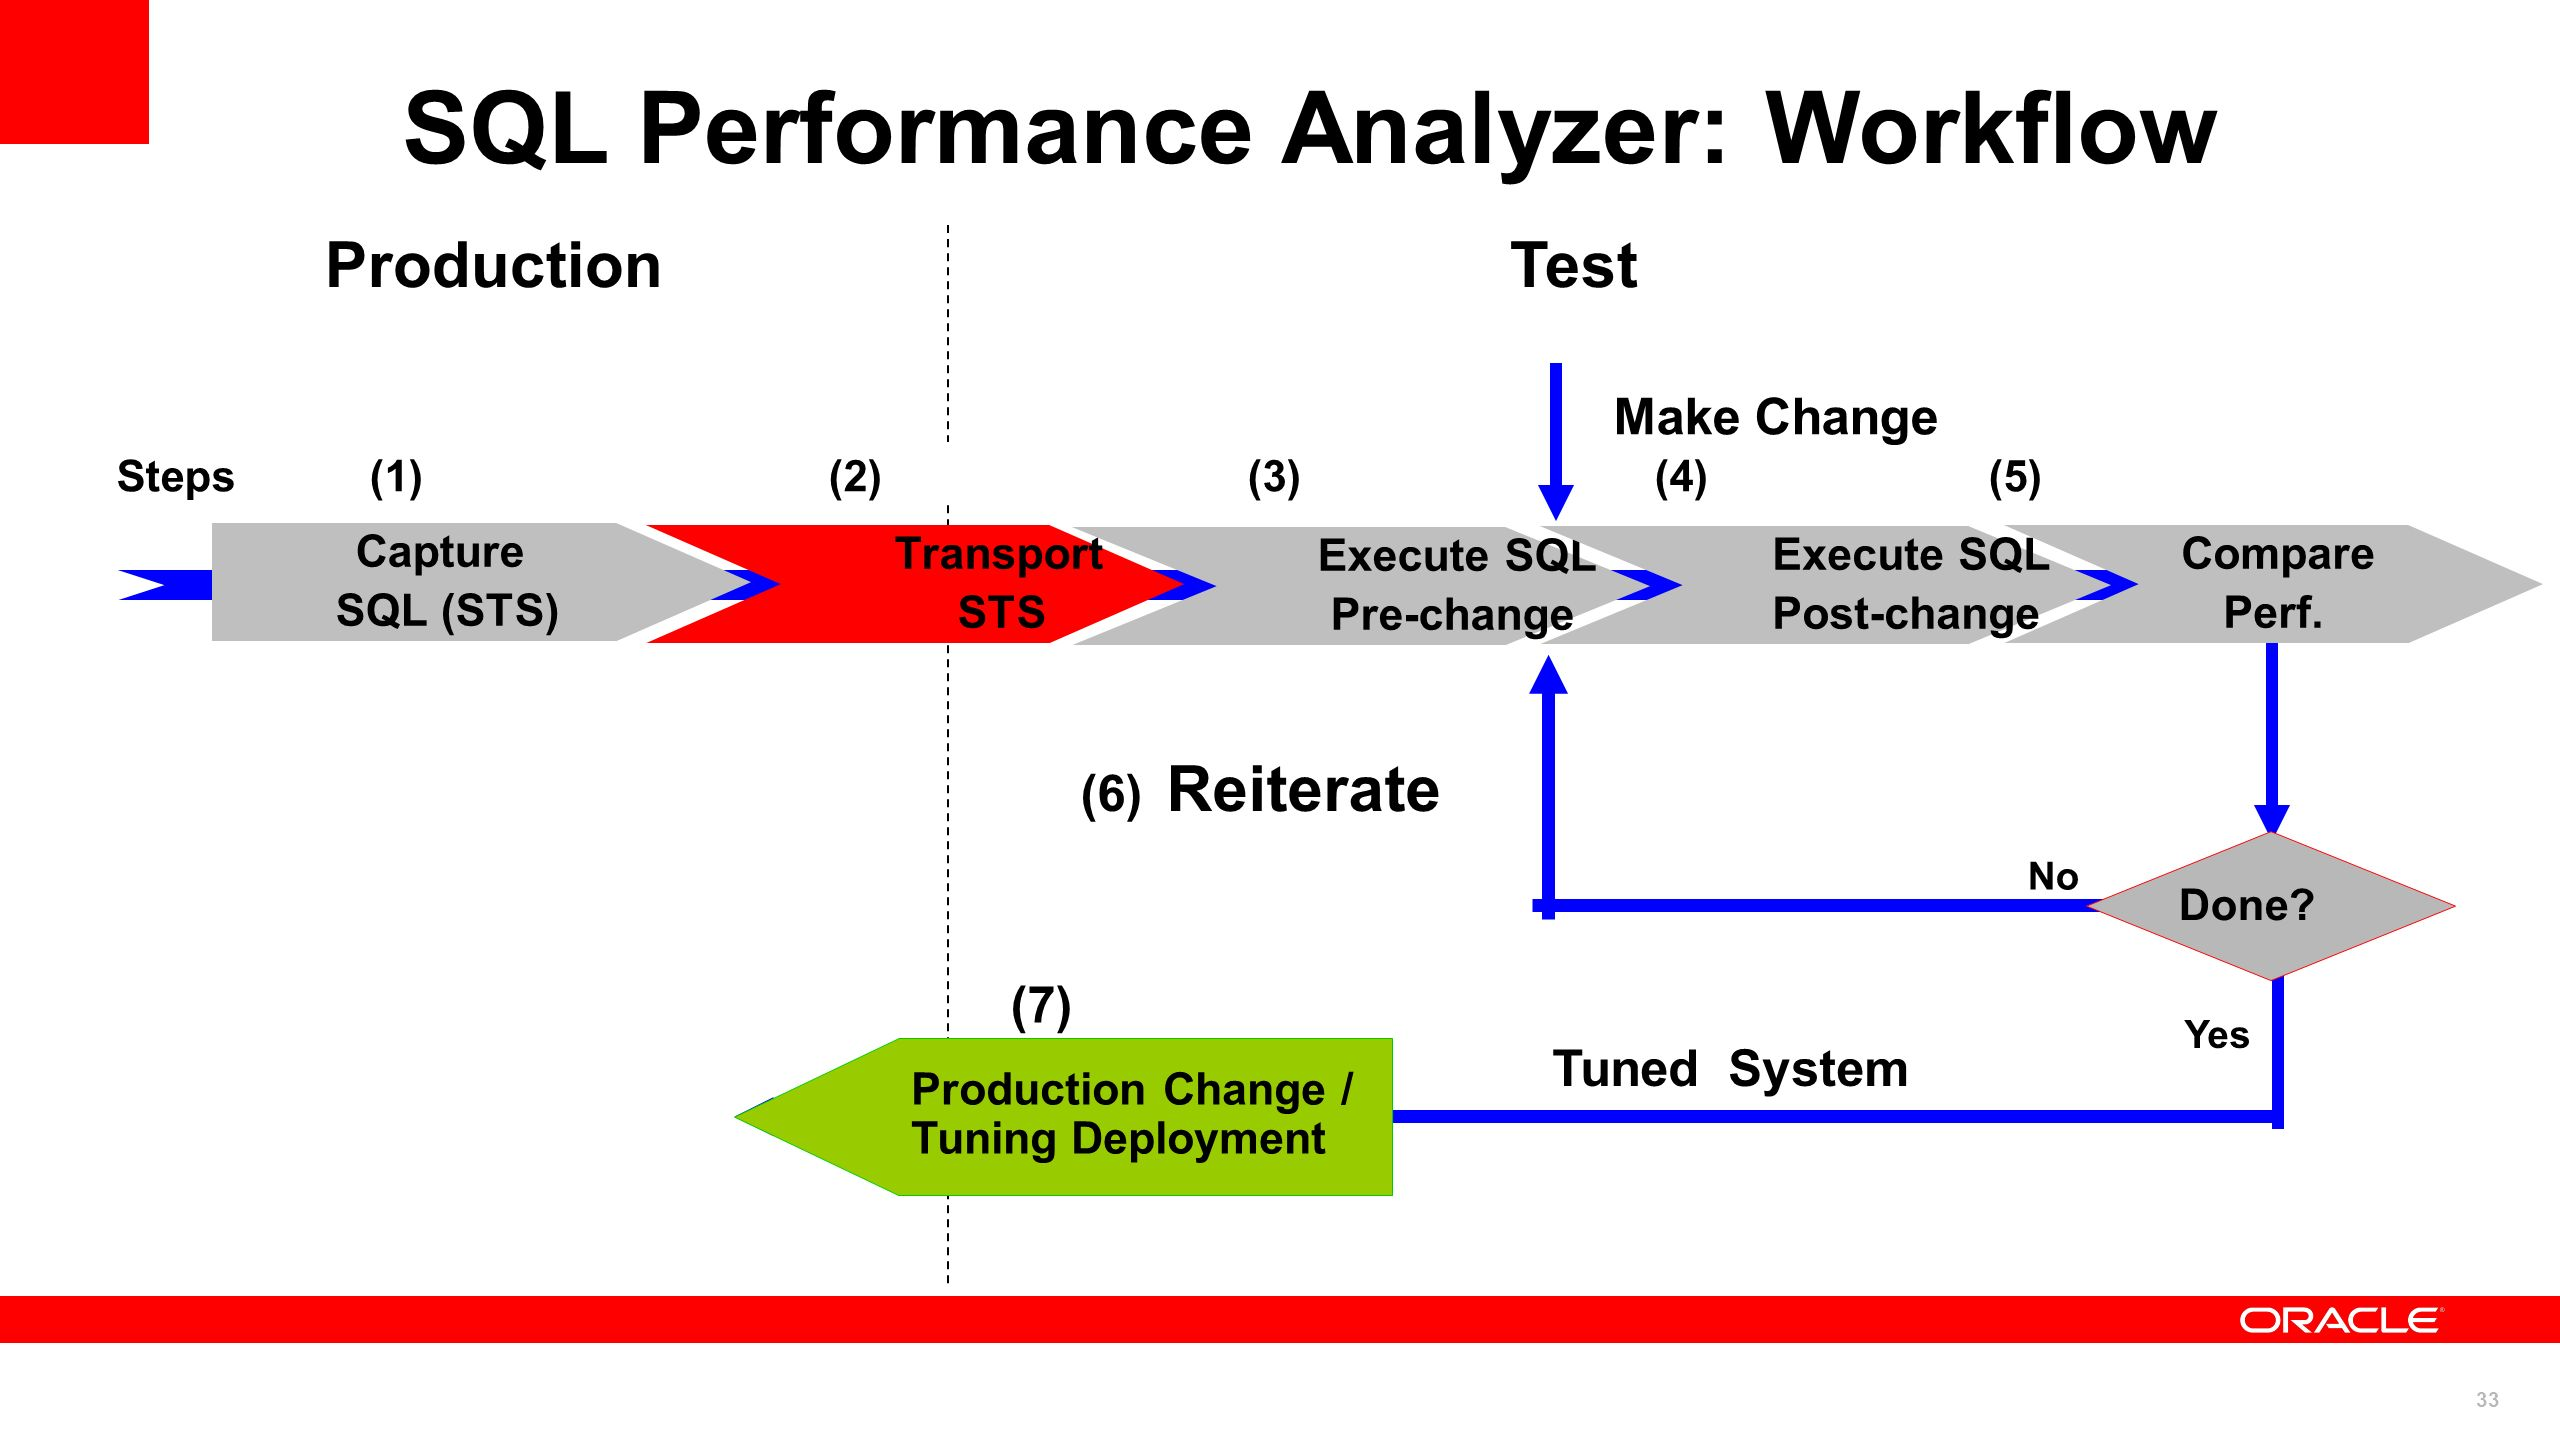 SQL Performance Analyzer: Workflow